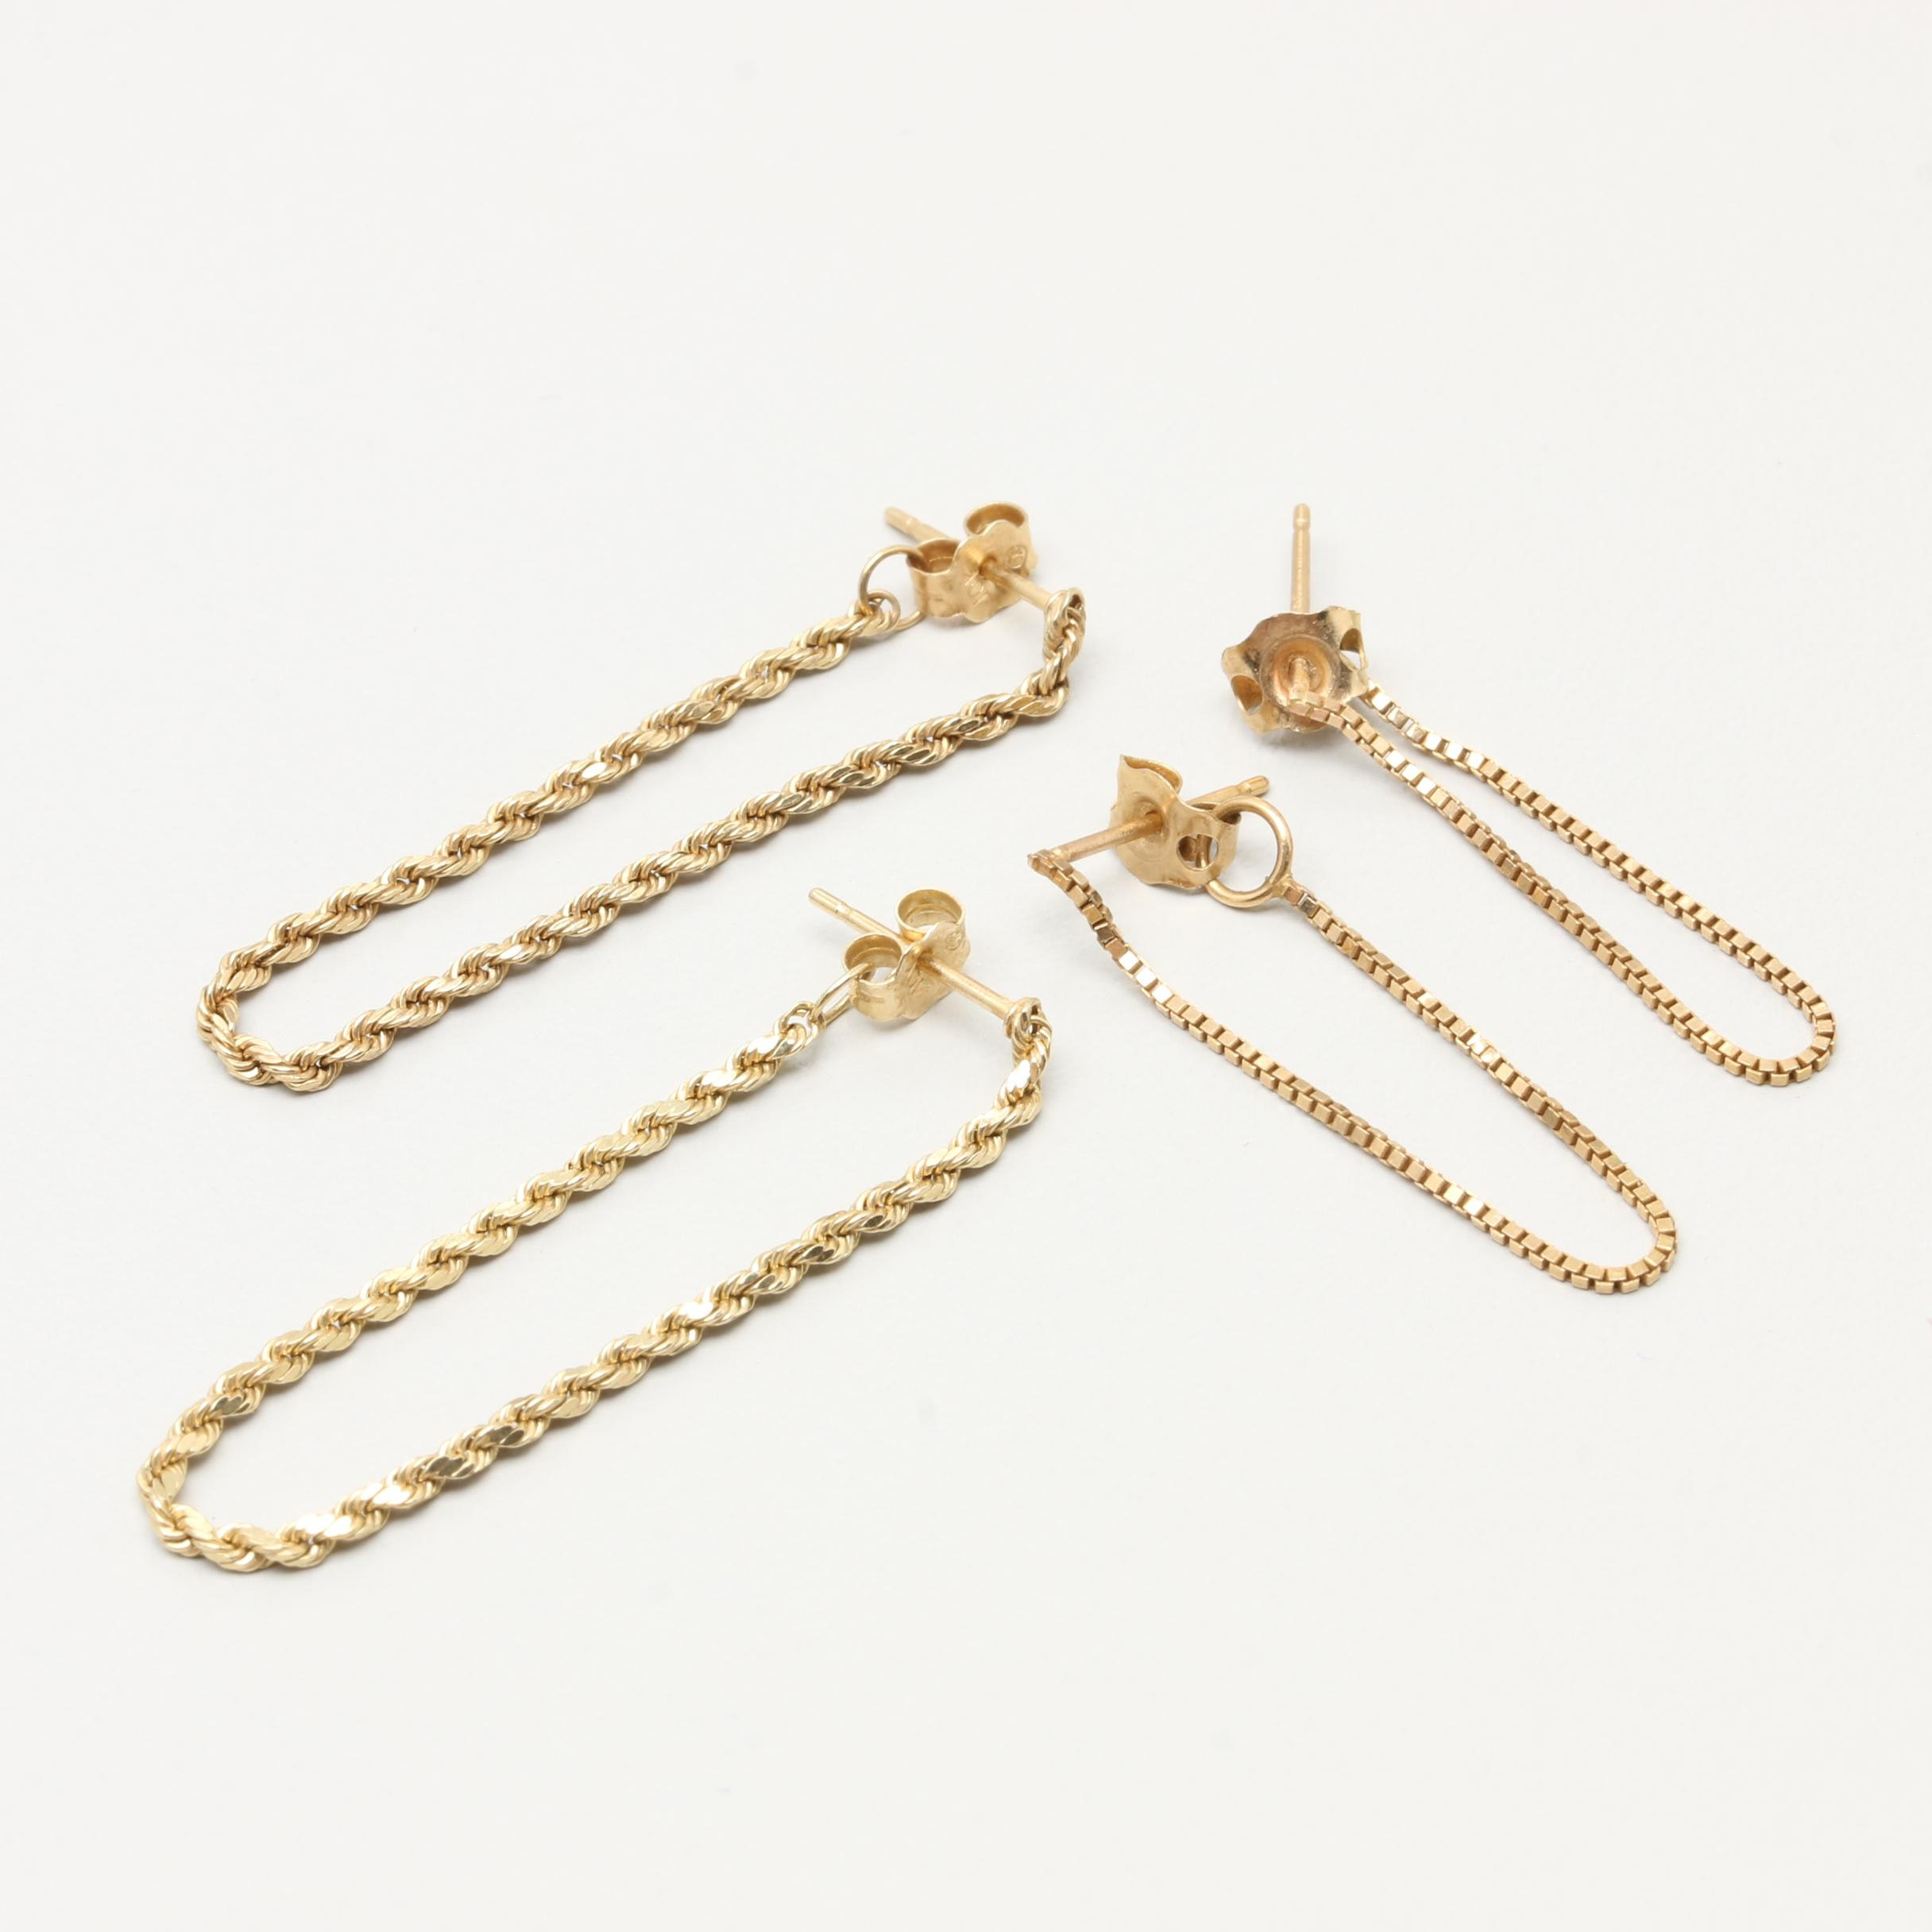 10K and 14K Yellow Gold Chain Hoop Earrings